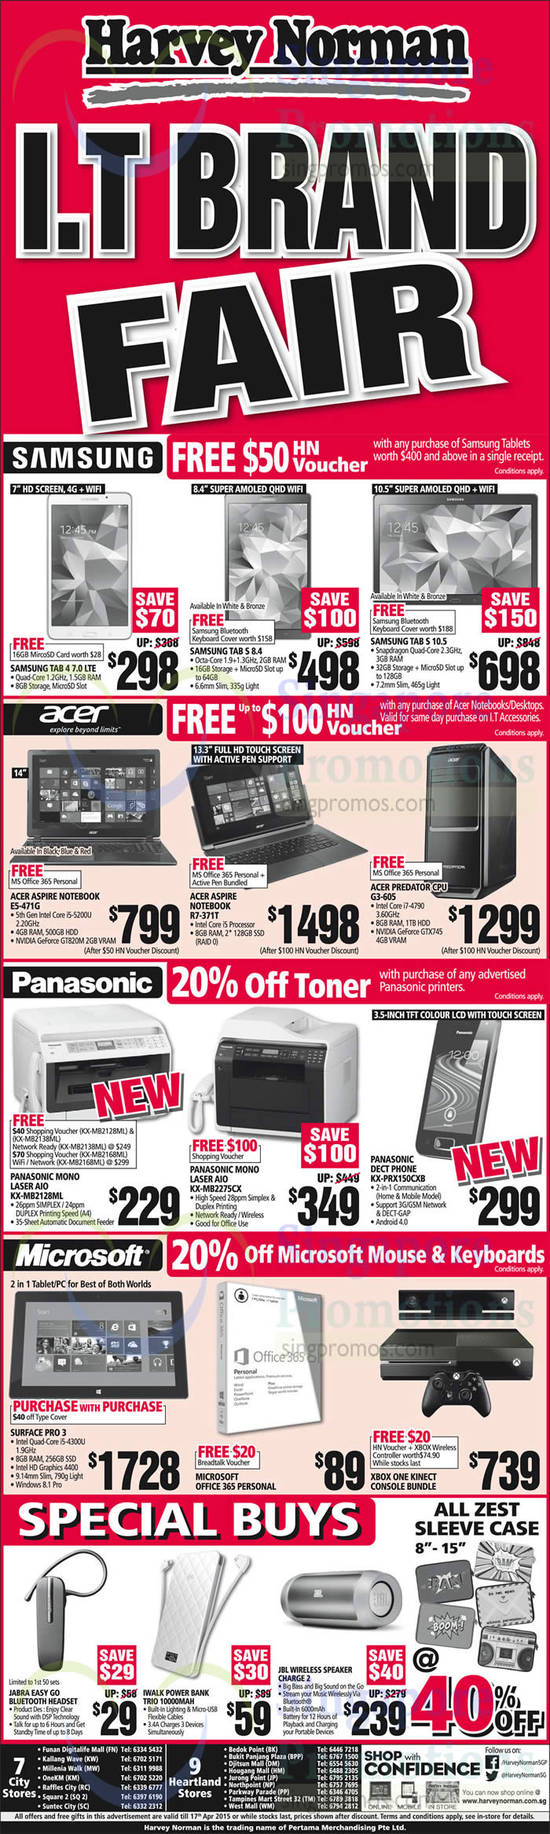 Featured image for Harvey Norman Electronics, IT, Appliances & Other Offers 11 - 17 Apr 2015